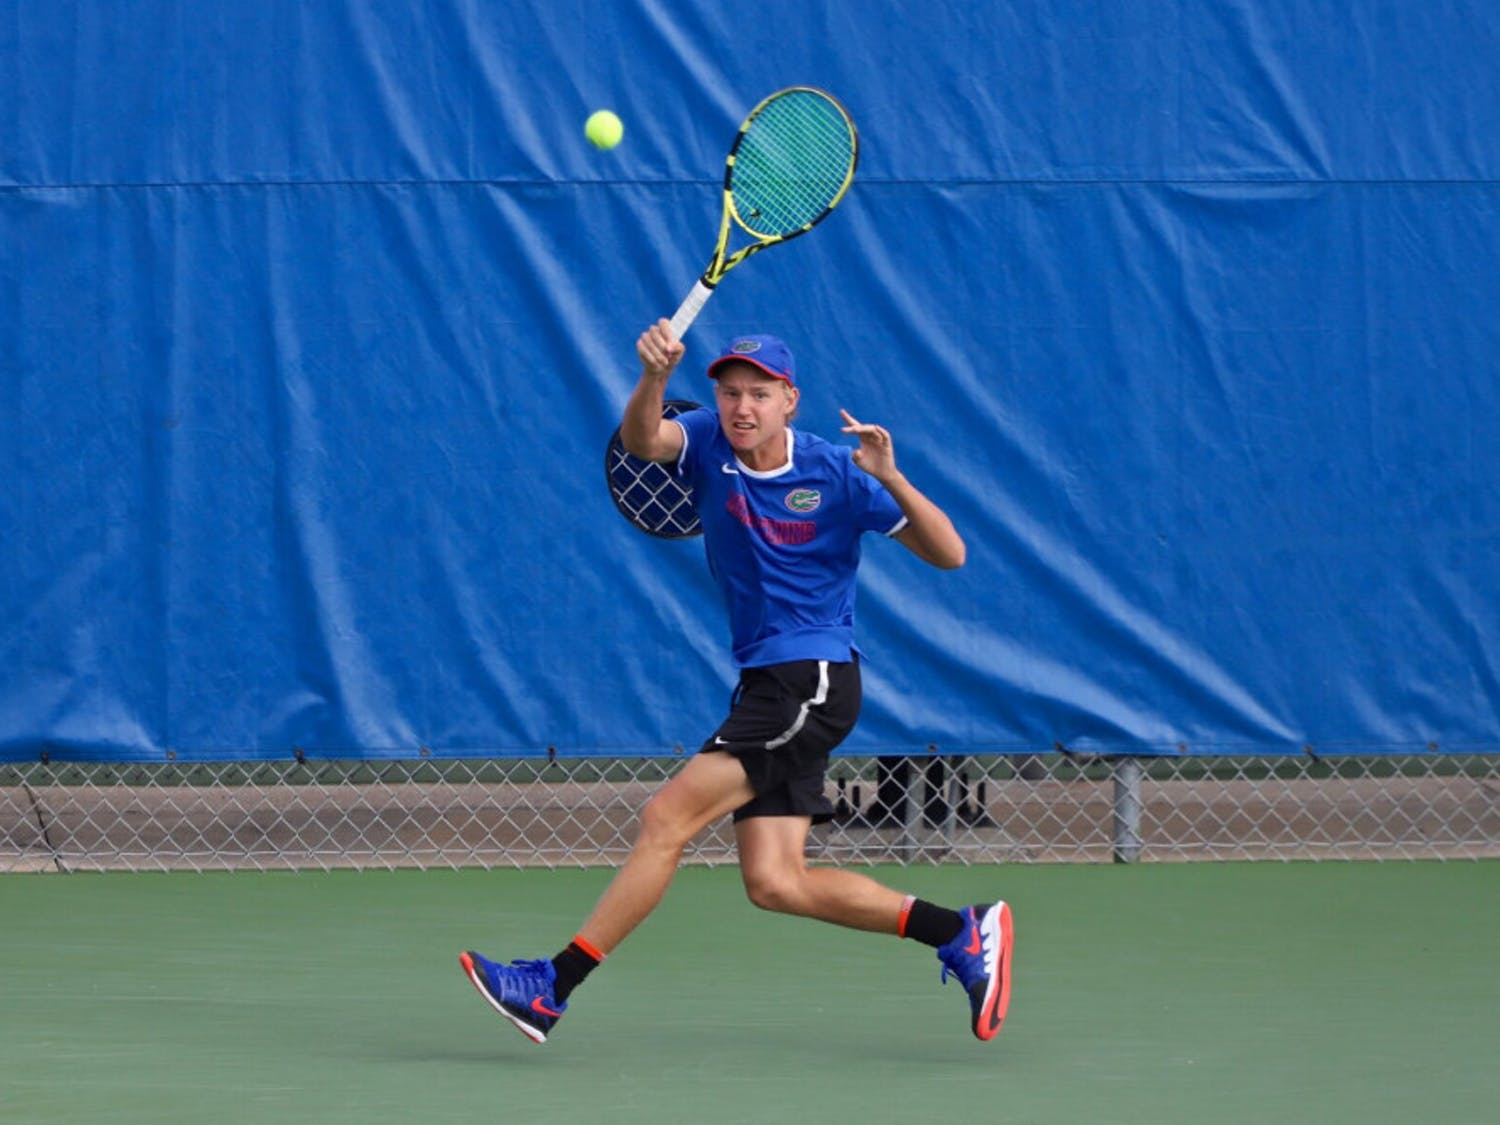 Lukas Greif swings at a tennis ball on the fourth day of the ITA Tournament in Gainesville last season.